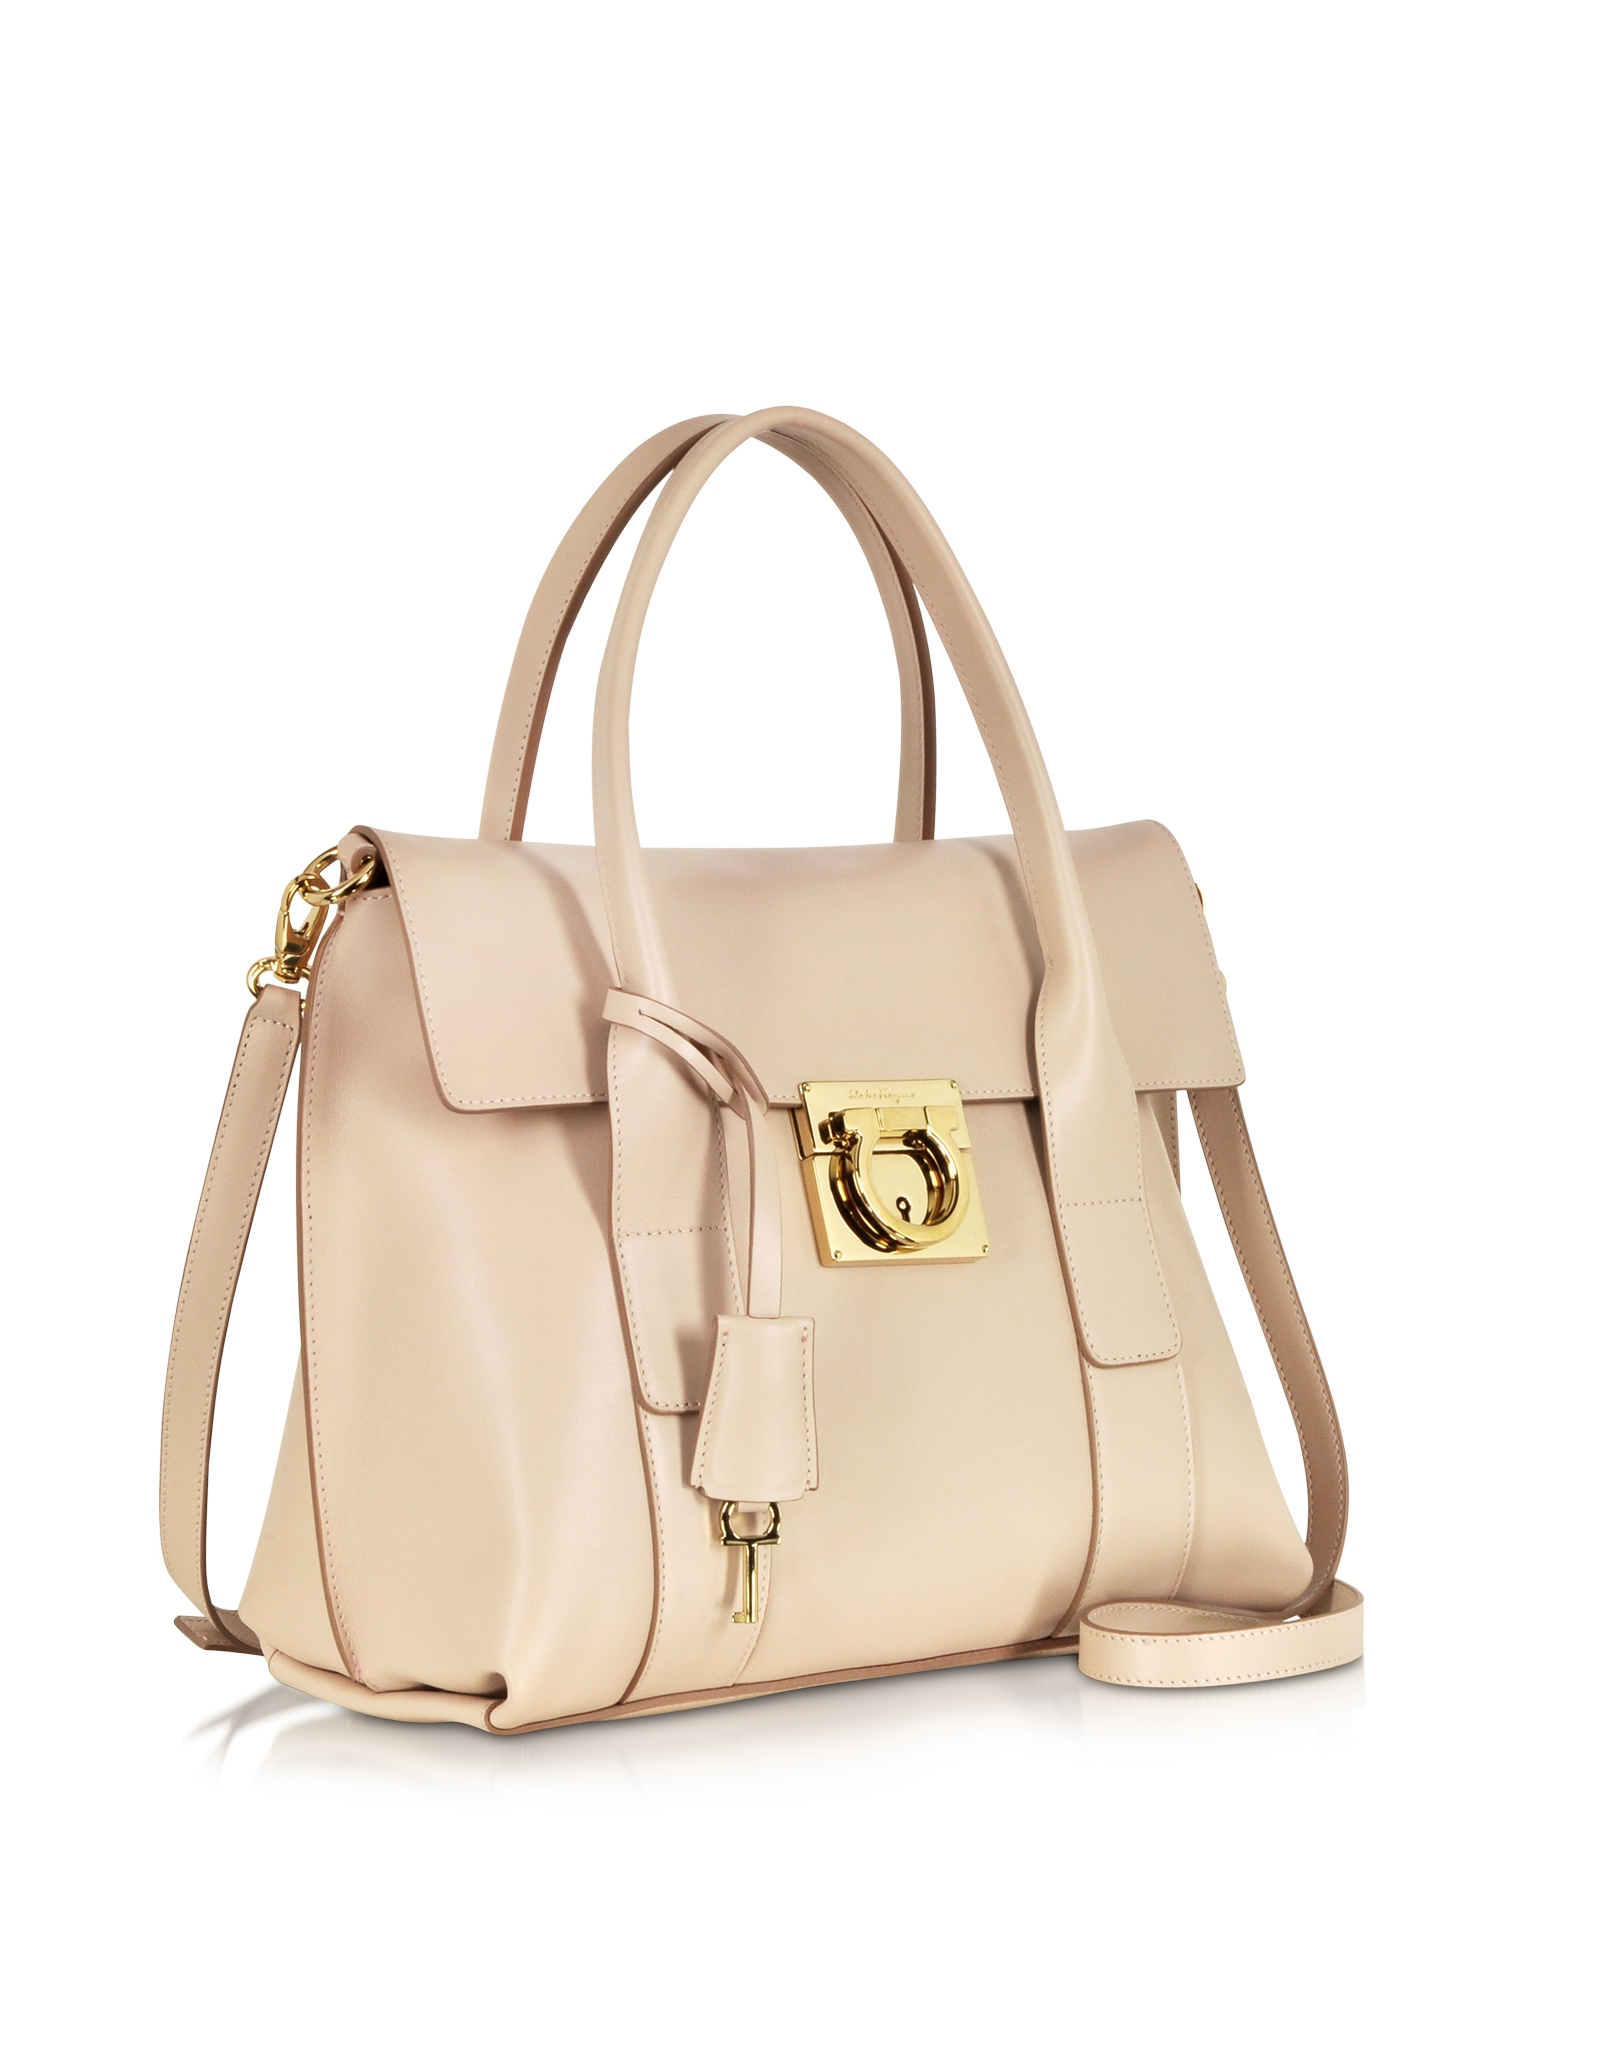 6d96e8c3274b Ferragamo Small Sookie Gancio Lock Tote Bag in Natural - Lyst